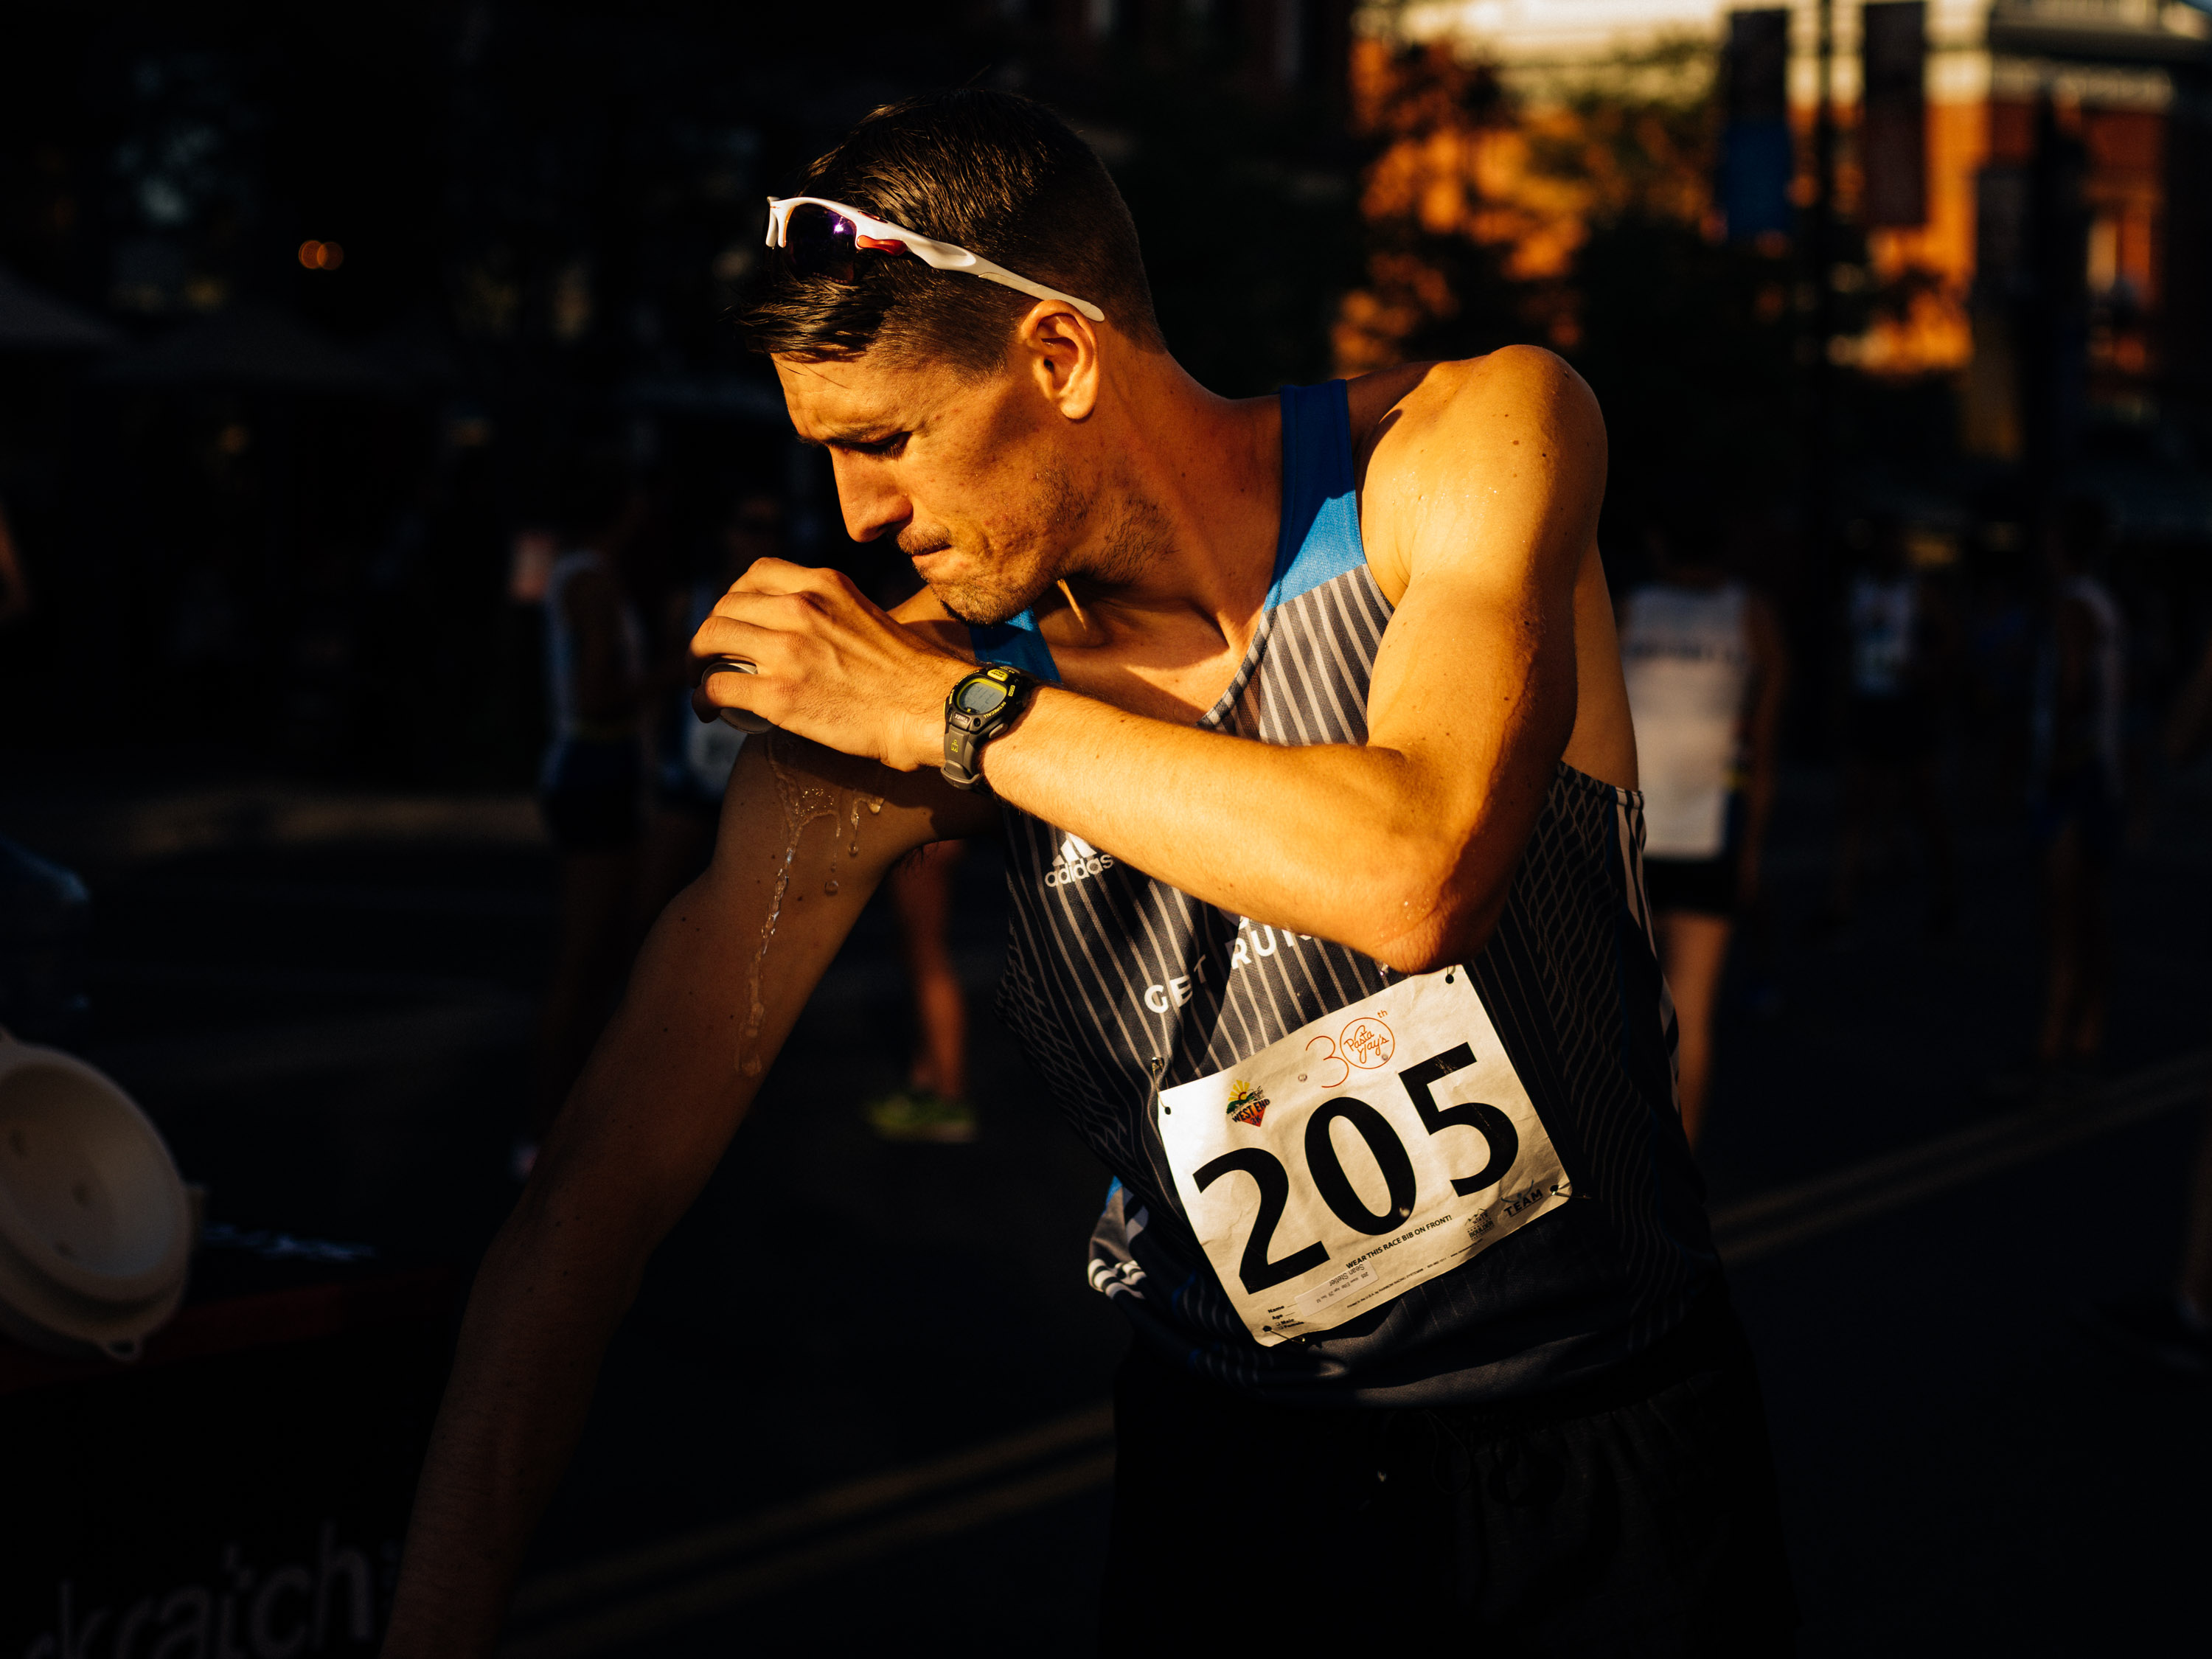 Pearl Street 3k Race - Greg Mionske - Advertising and Editorial Photographer in Denver